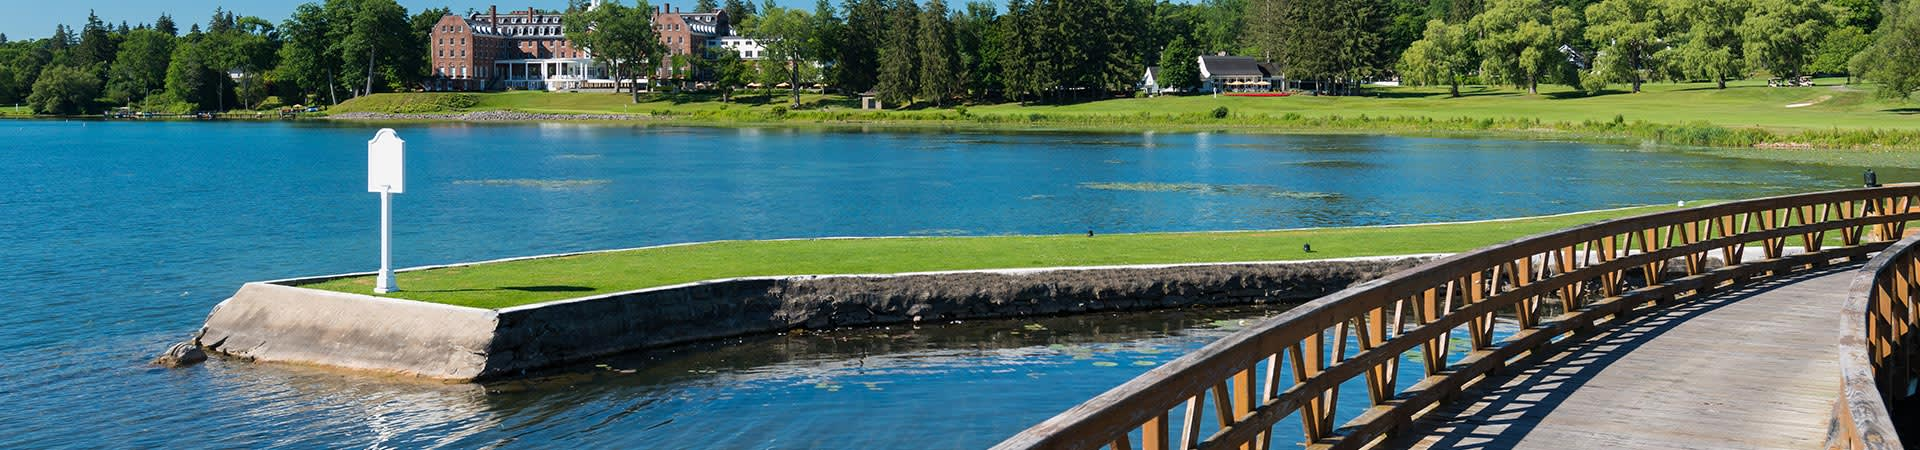 Golf Specials at Cooperstown, New York